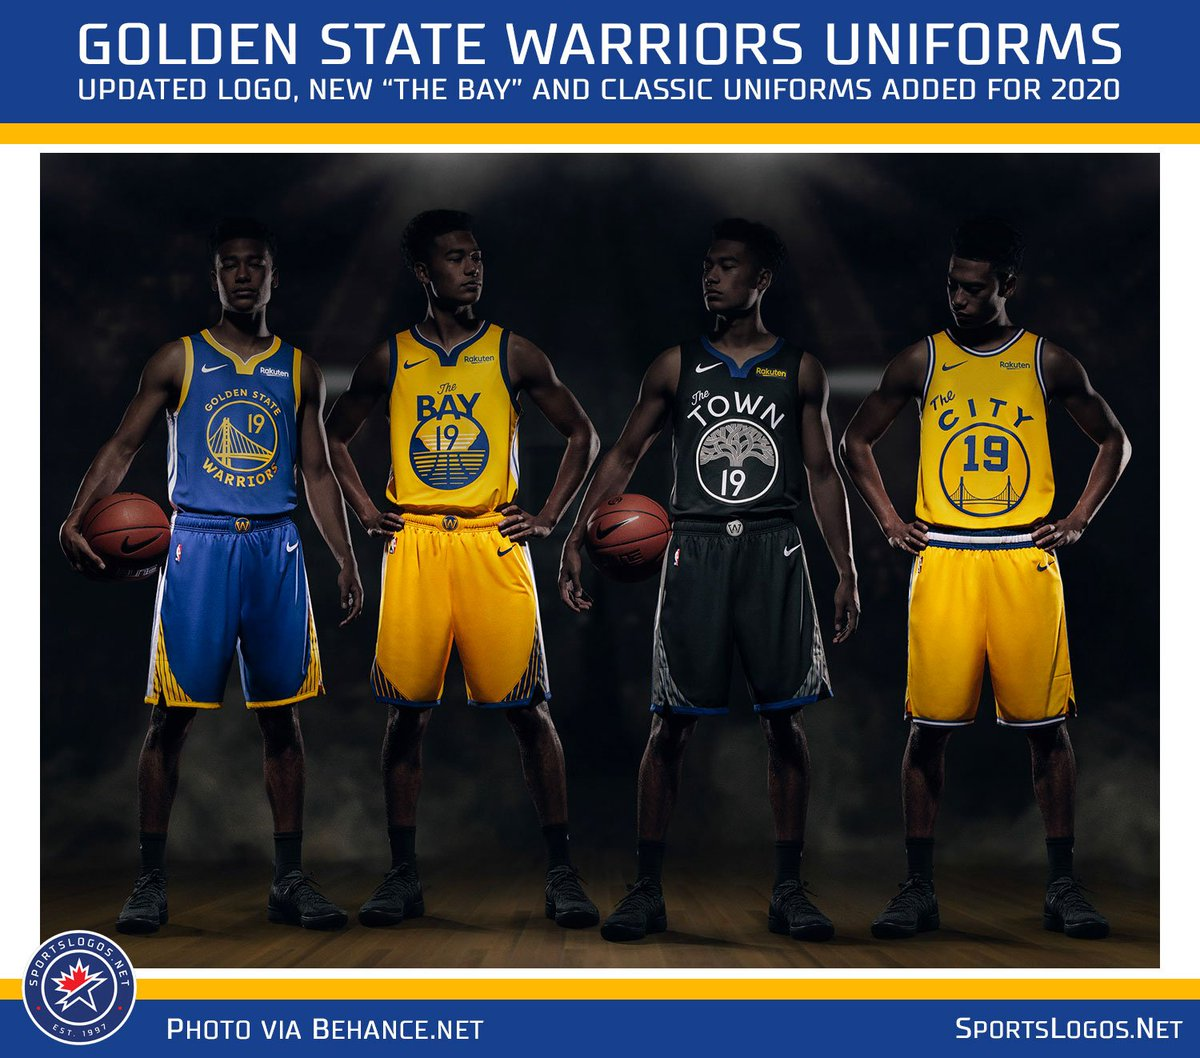 Chris Creamer On Twitter Leaked New Uniforms For The Golden State Warriors Shows New The Bay Uniform Re Introduction Of The City Throwback As Well As The Tweaked Logo And New Number Font